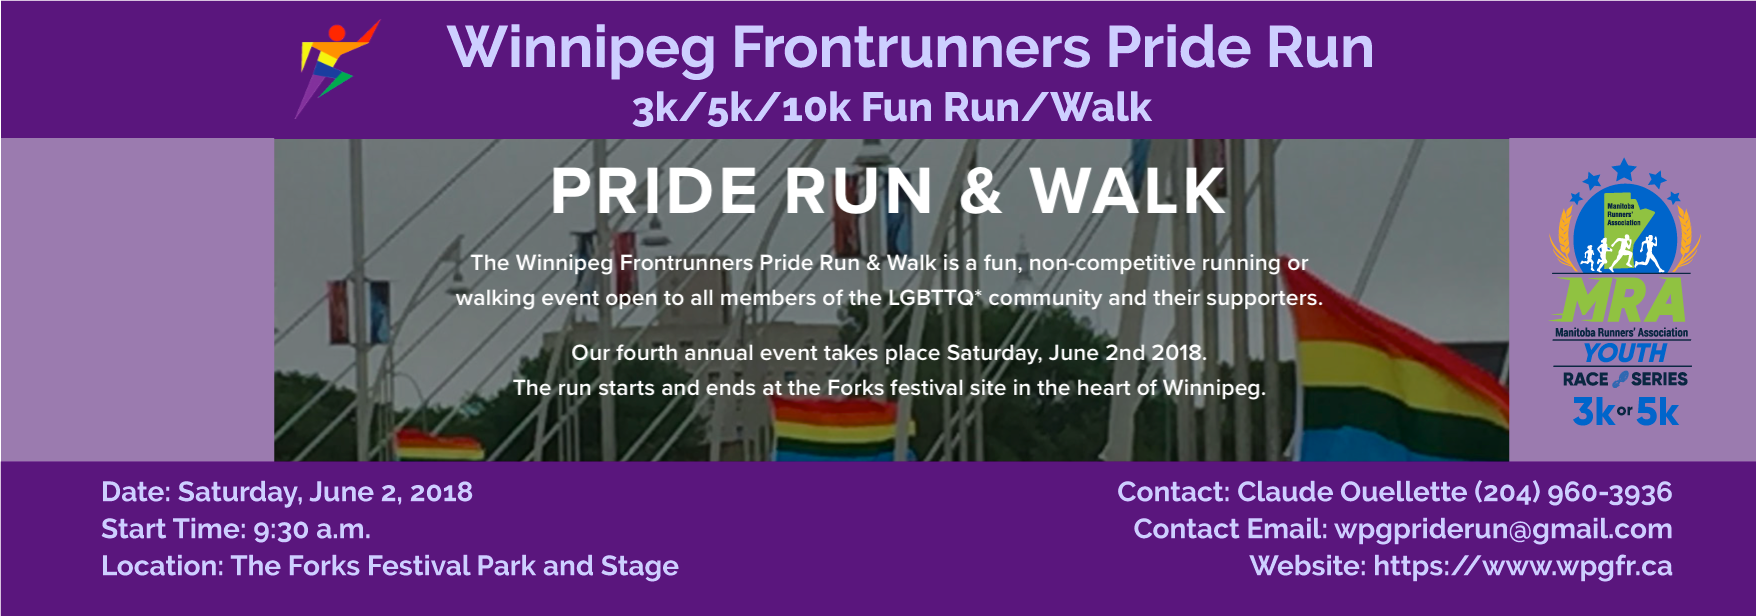 mraweb.ca/events/winnipeg-frontrunners-pride-run/